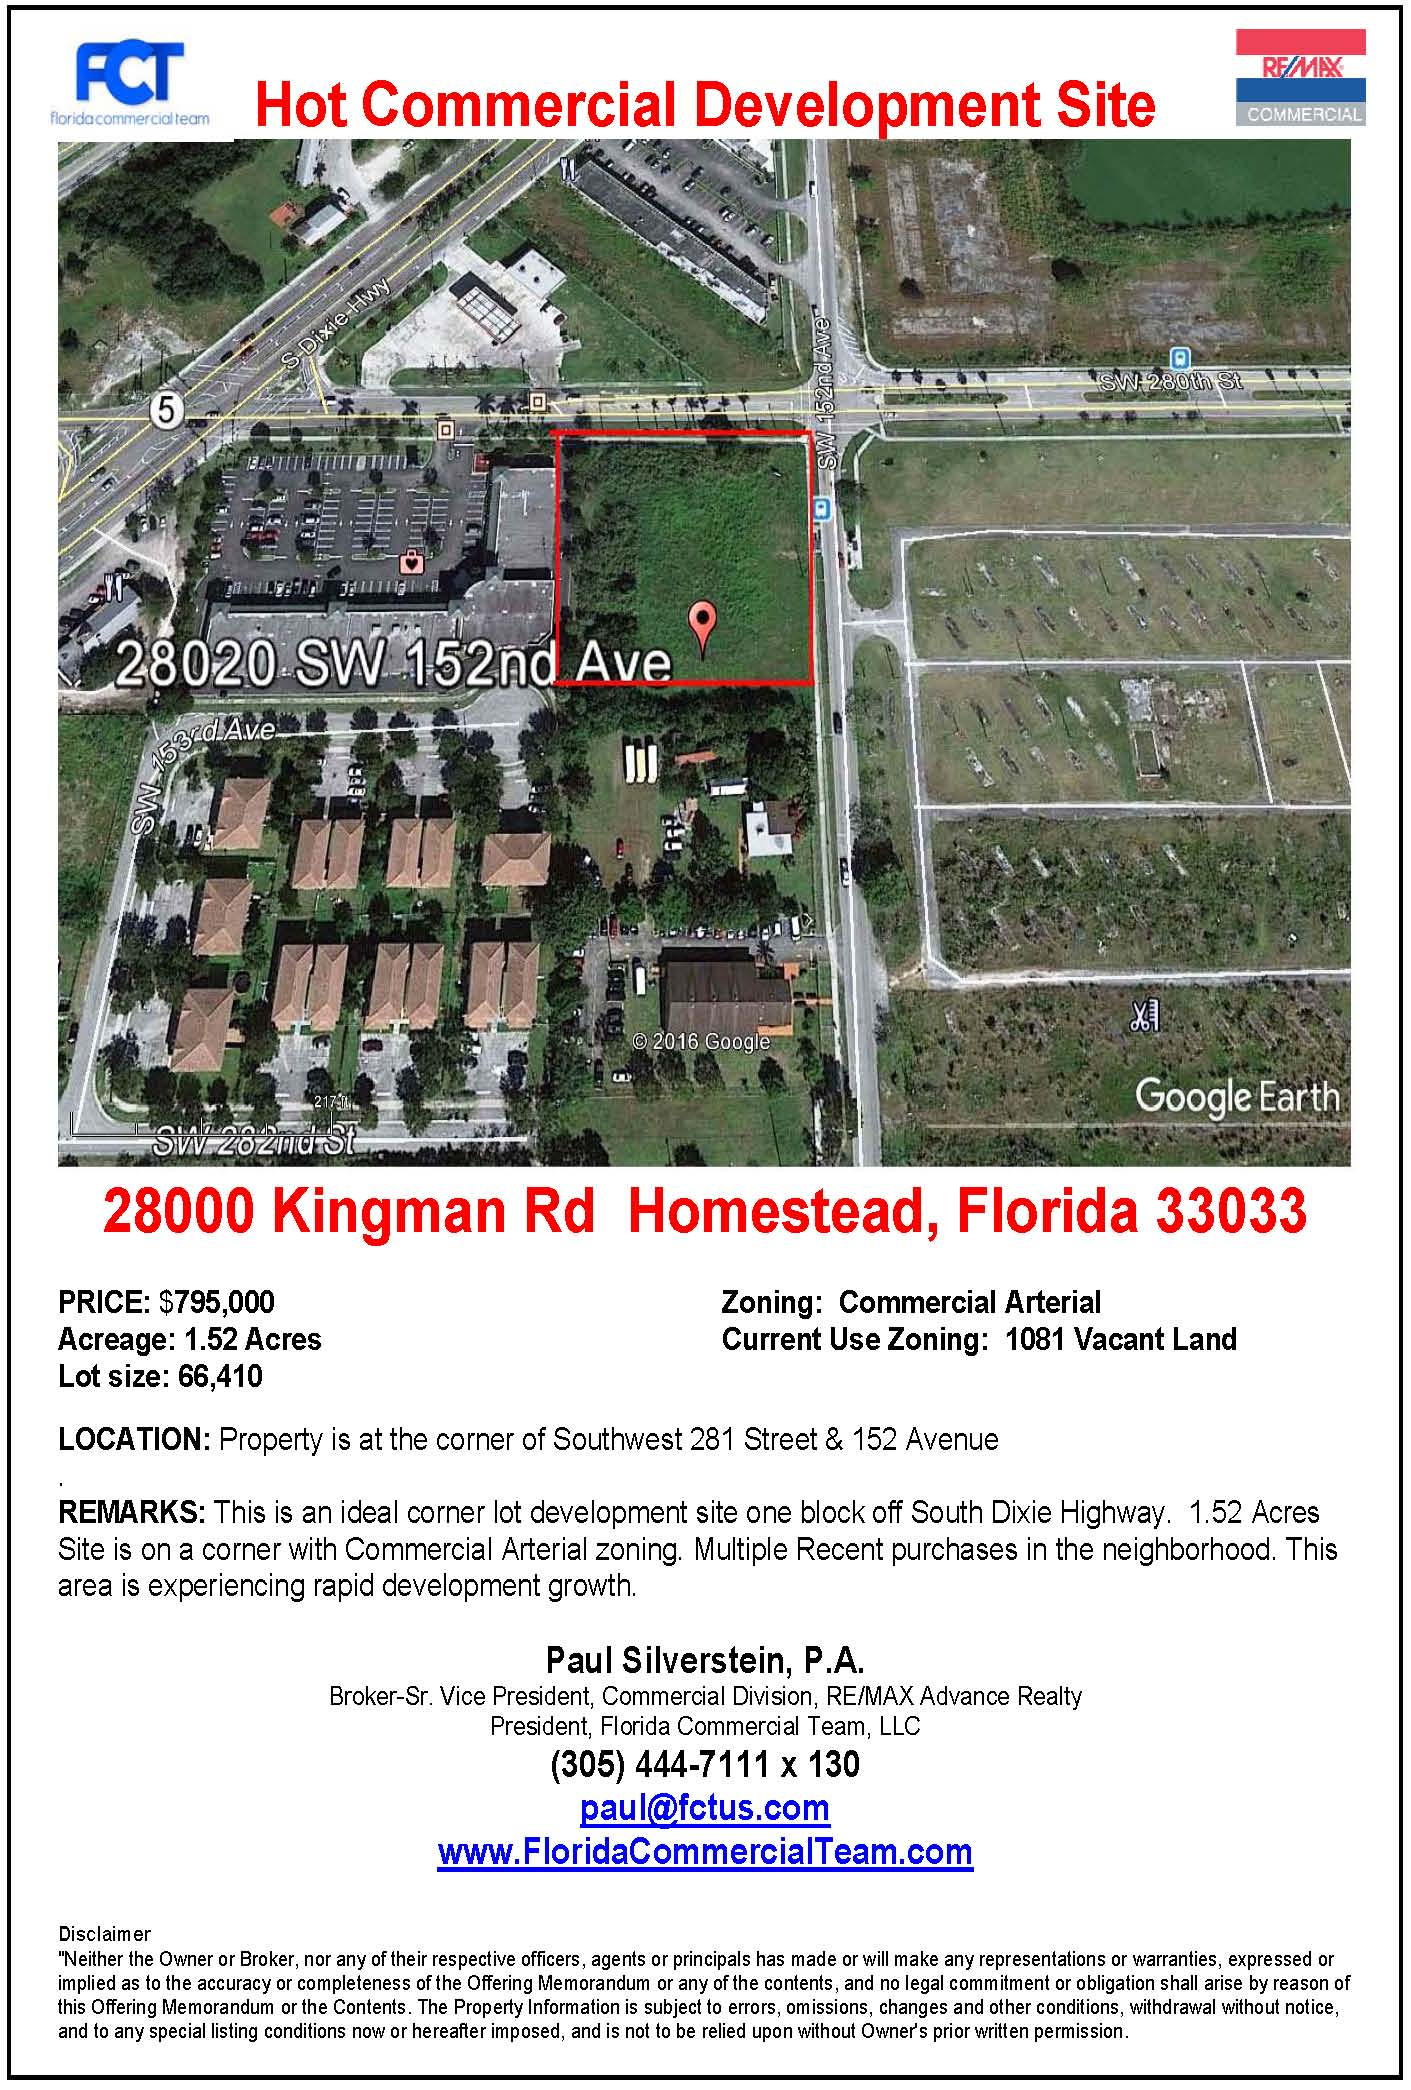 Miami Land for Sale,Development Site, Miami Development Site, Retail Site for Sale